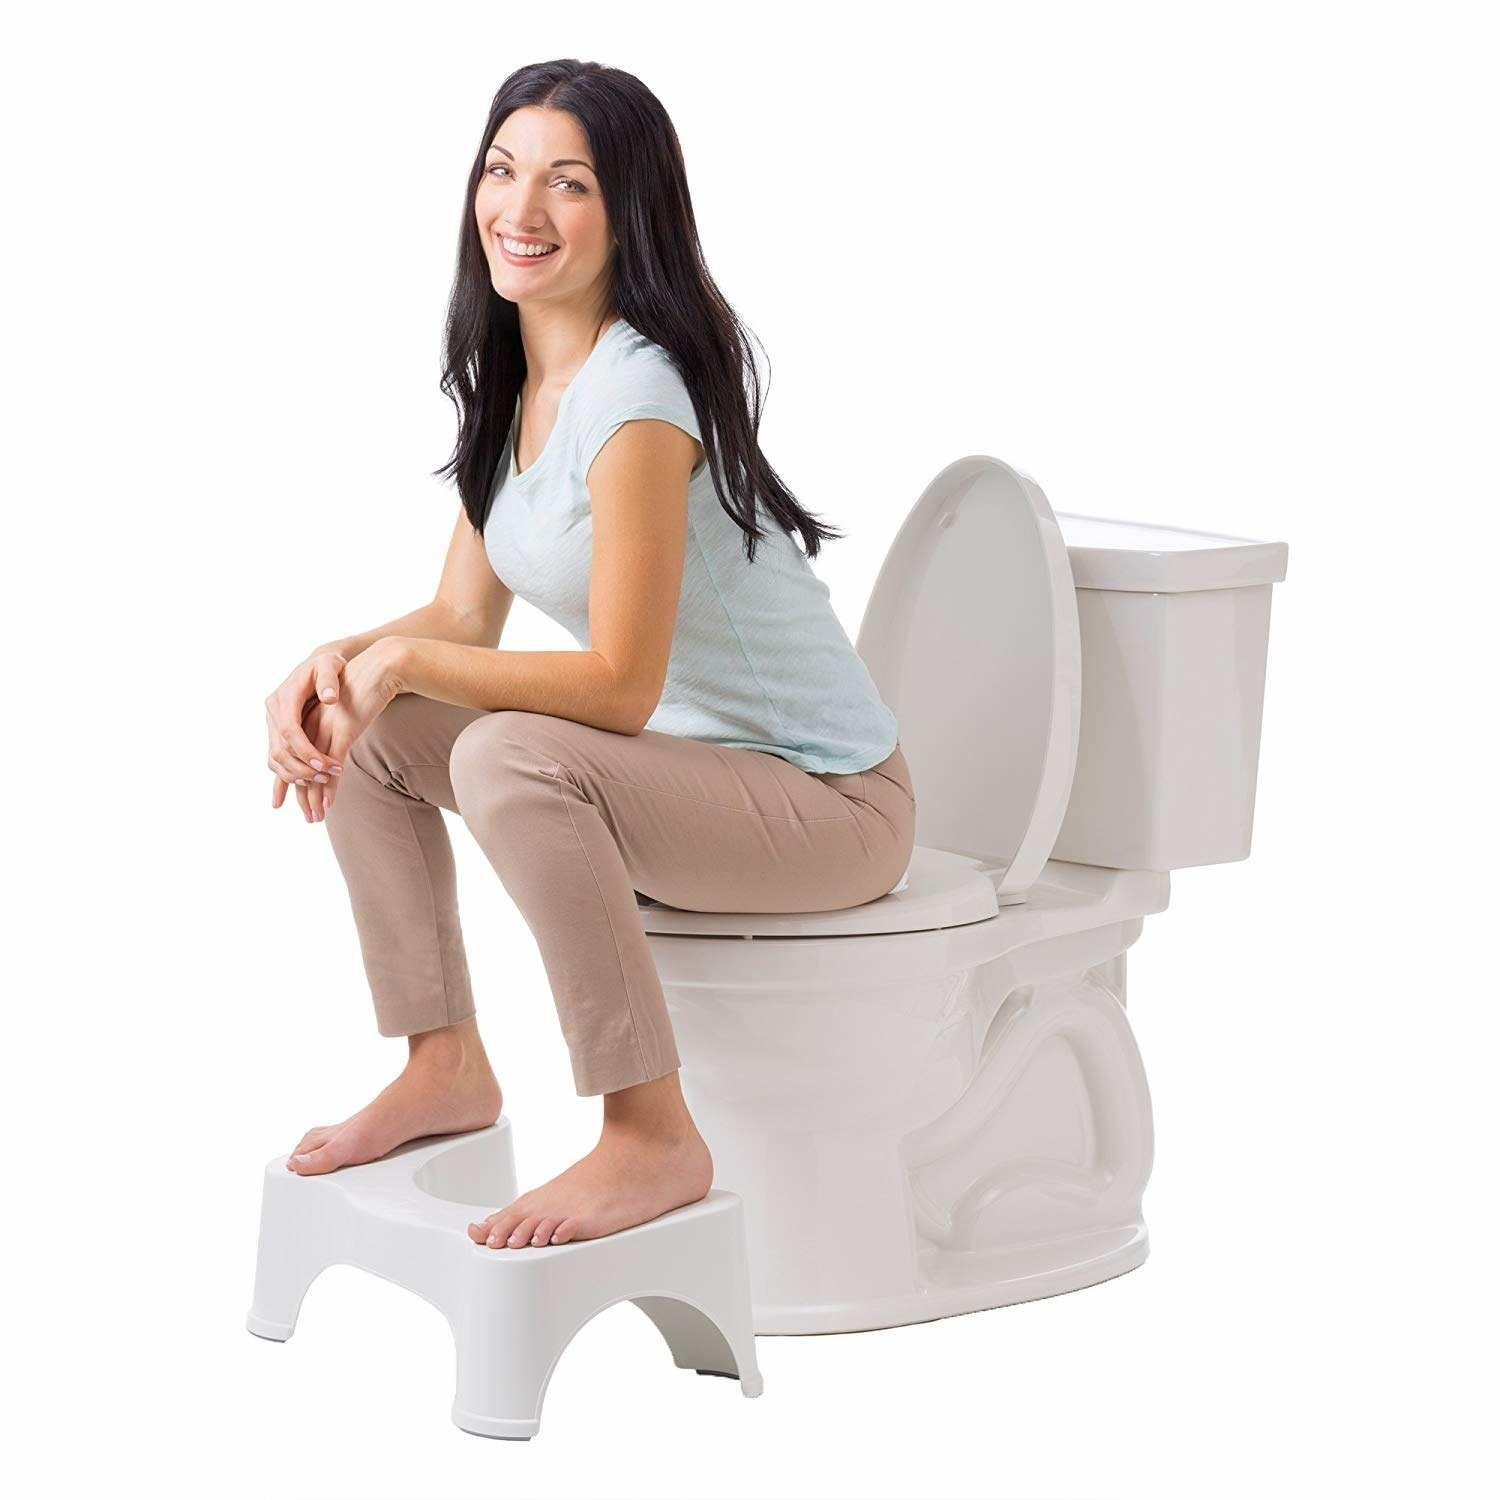 fully-clothed model sitting on toilet with their feet on the stool